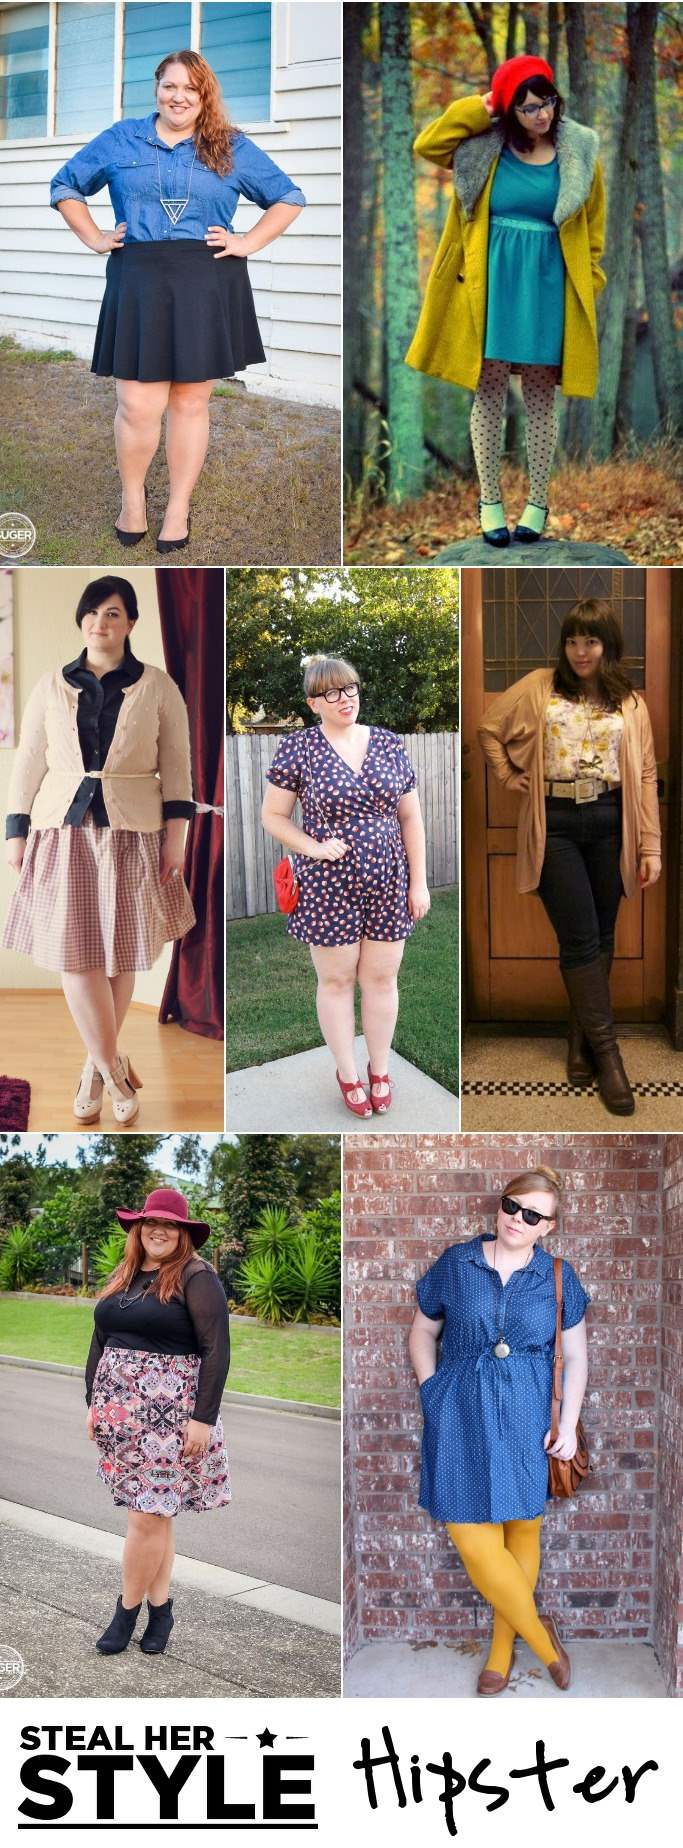 Steal Her Style Hipster Plus Size Fashion Blog.jpg